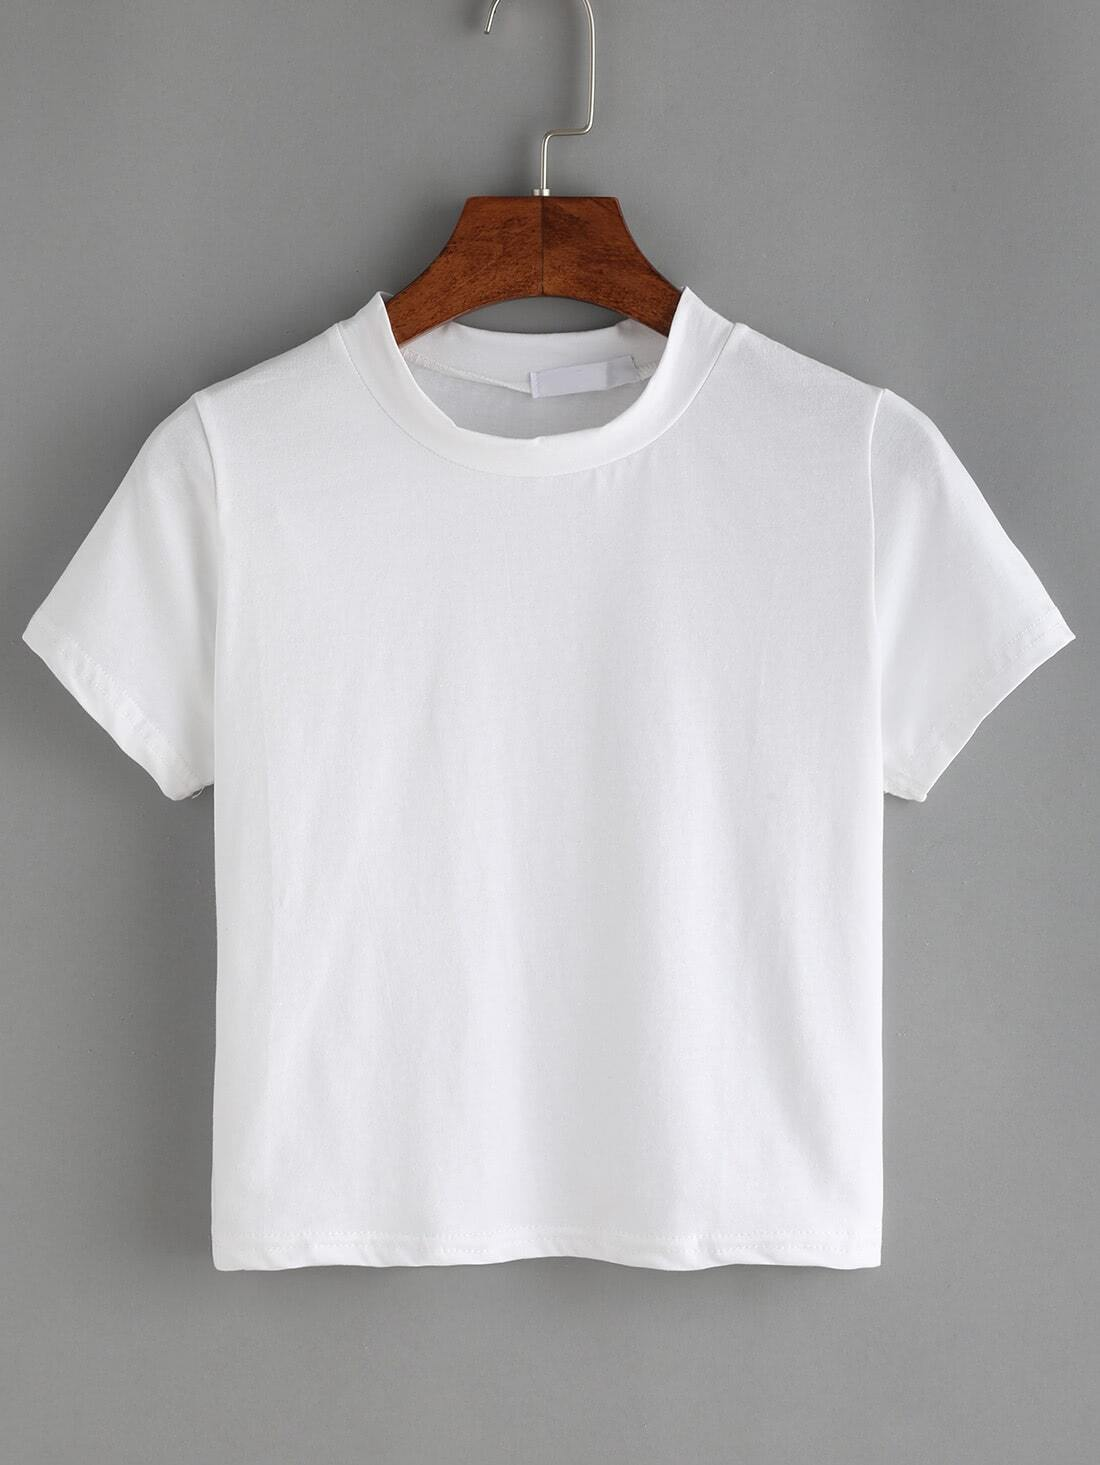 White crew neck t shirt for Crew neck white t shirt